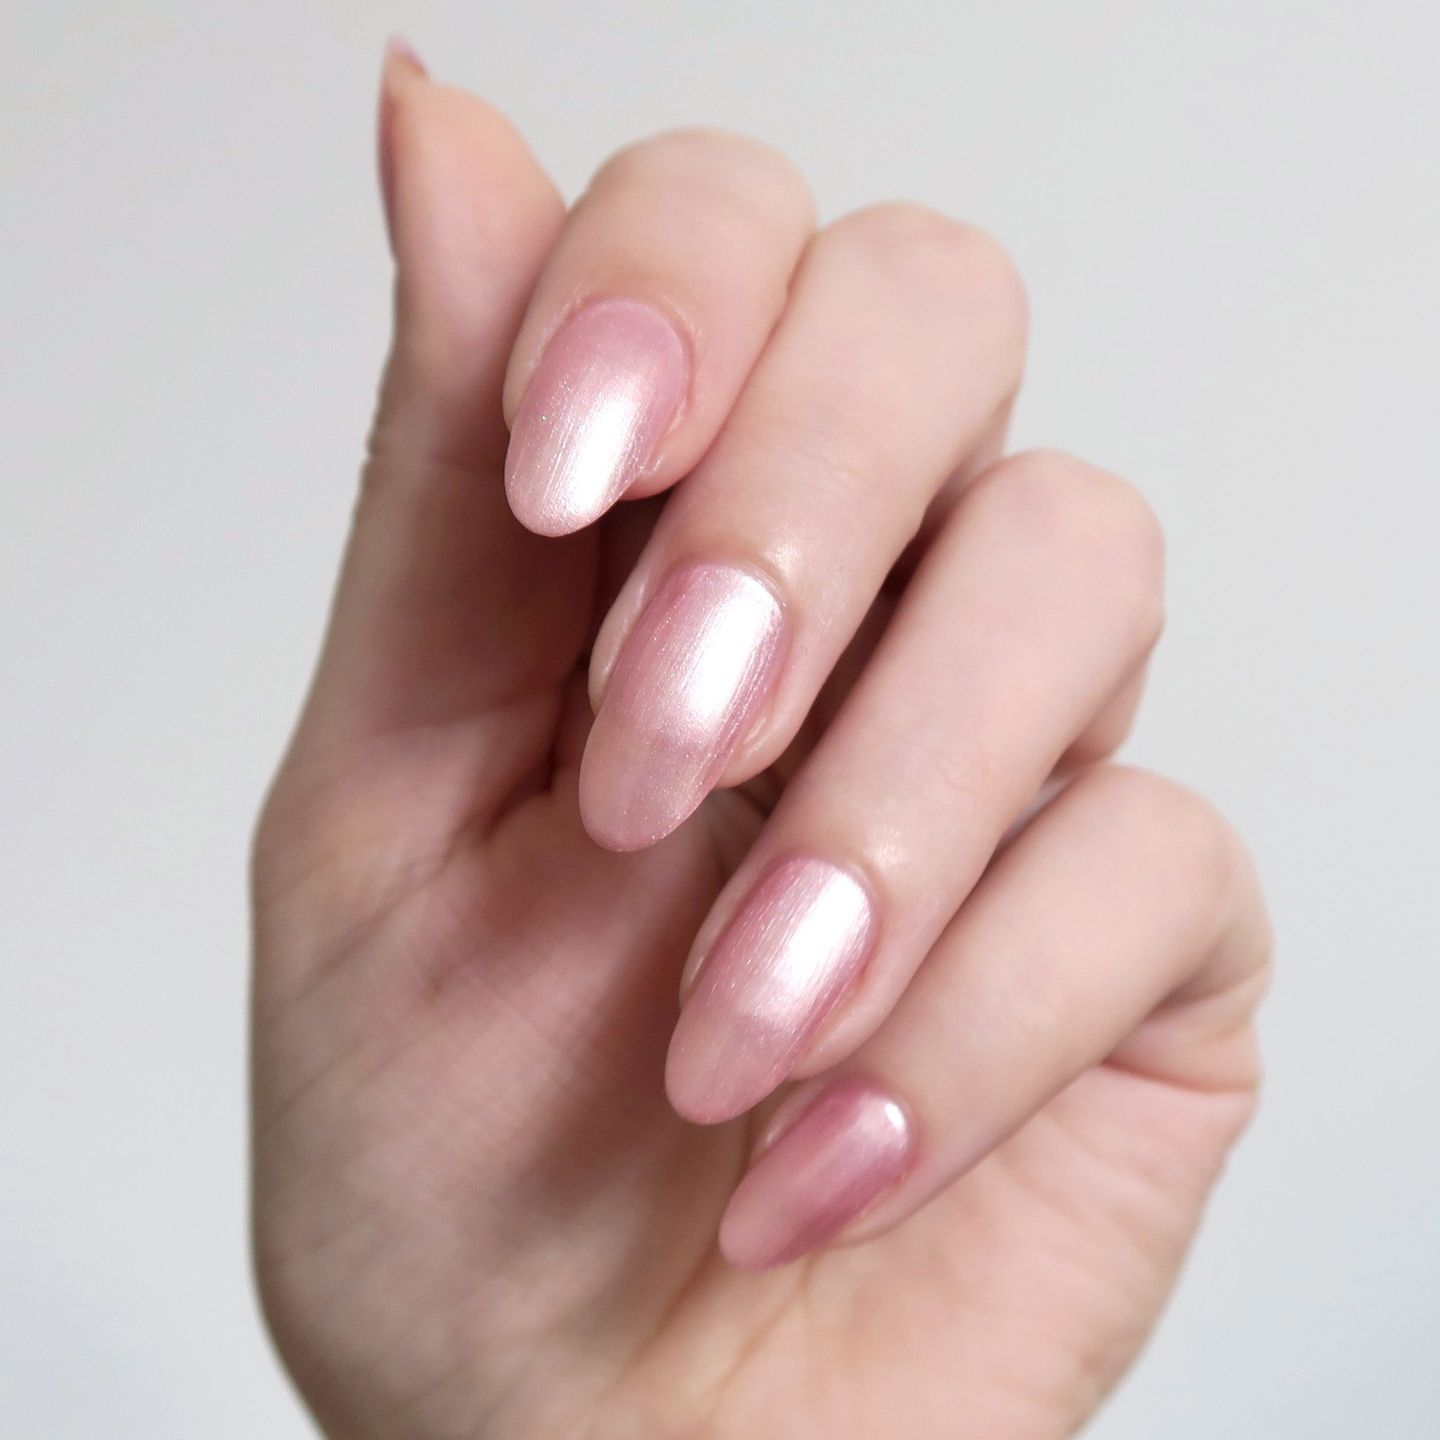 Repin and click to see my review of the new Morgan Taylor Color Of Petals collection. Morgan Taylor 'Follow The Petals' - pearl pink nail polish inspiration. Spring manicure inspiration. #talontedlex